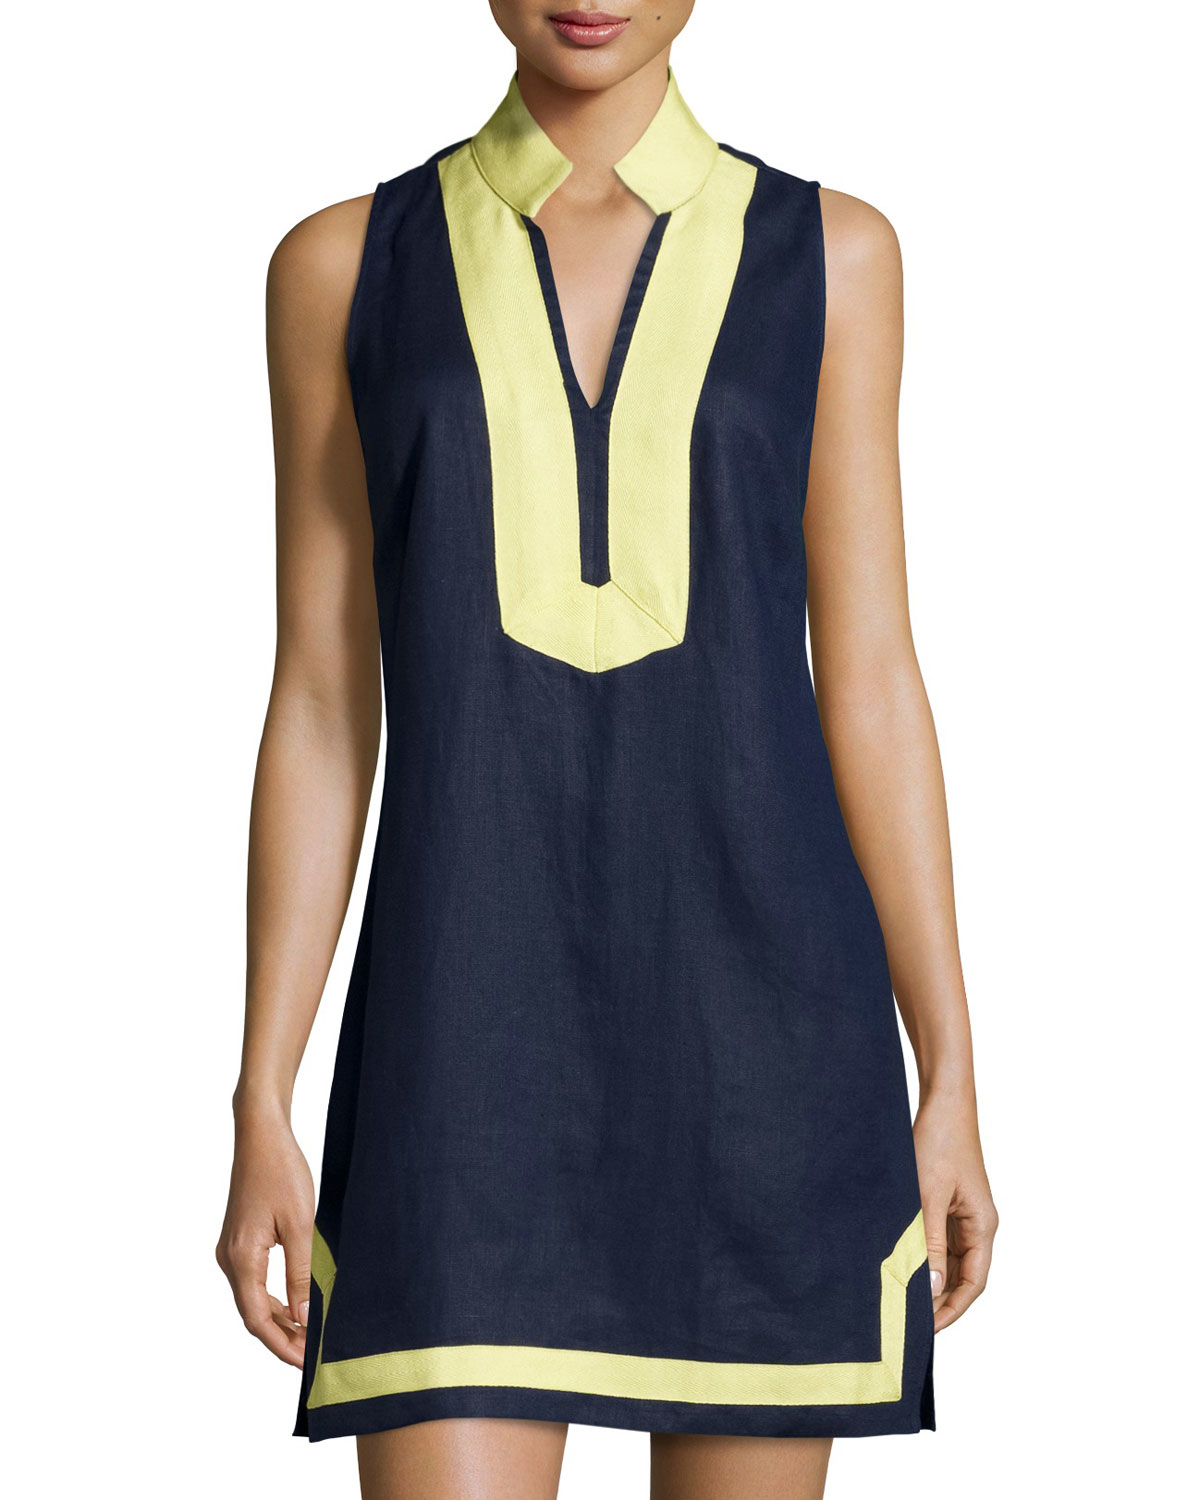 Sail to sable Classic Linen Sleeveless Dress in Yellow